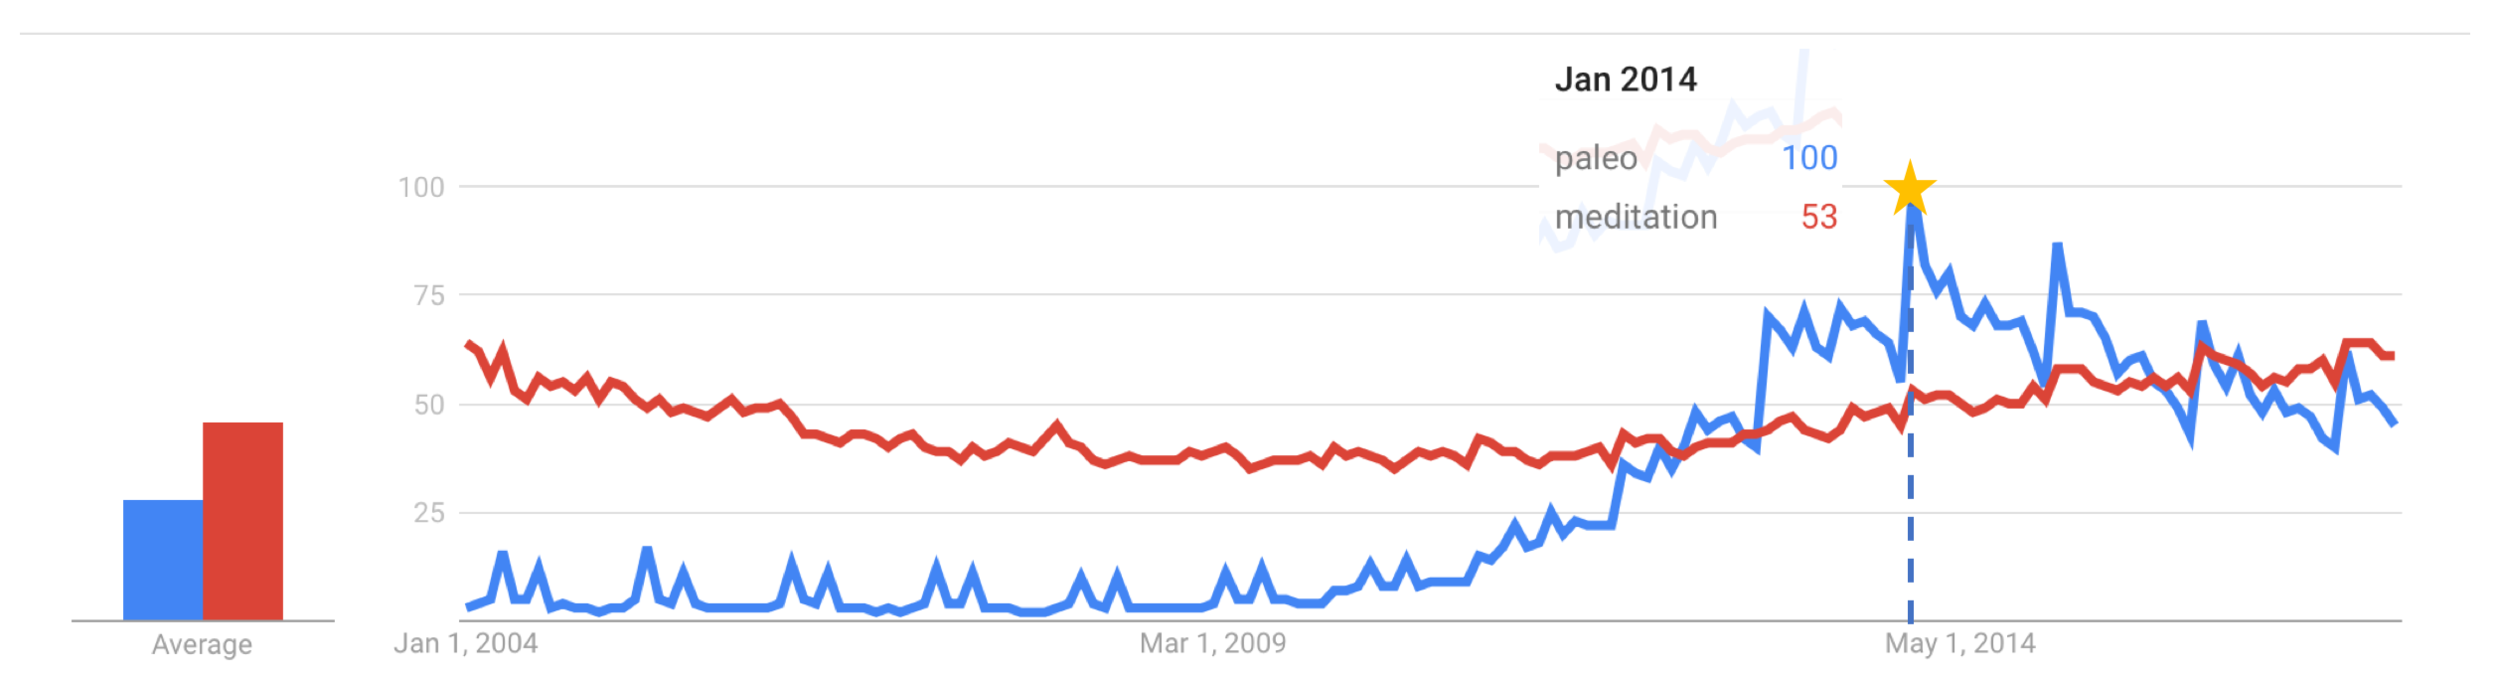 Paleo vs. Meditation as a search term. Graph courtesy of Google Trends.